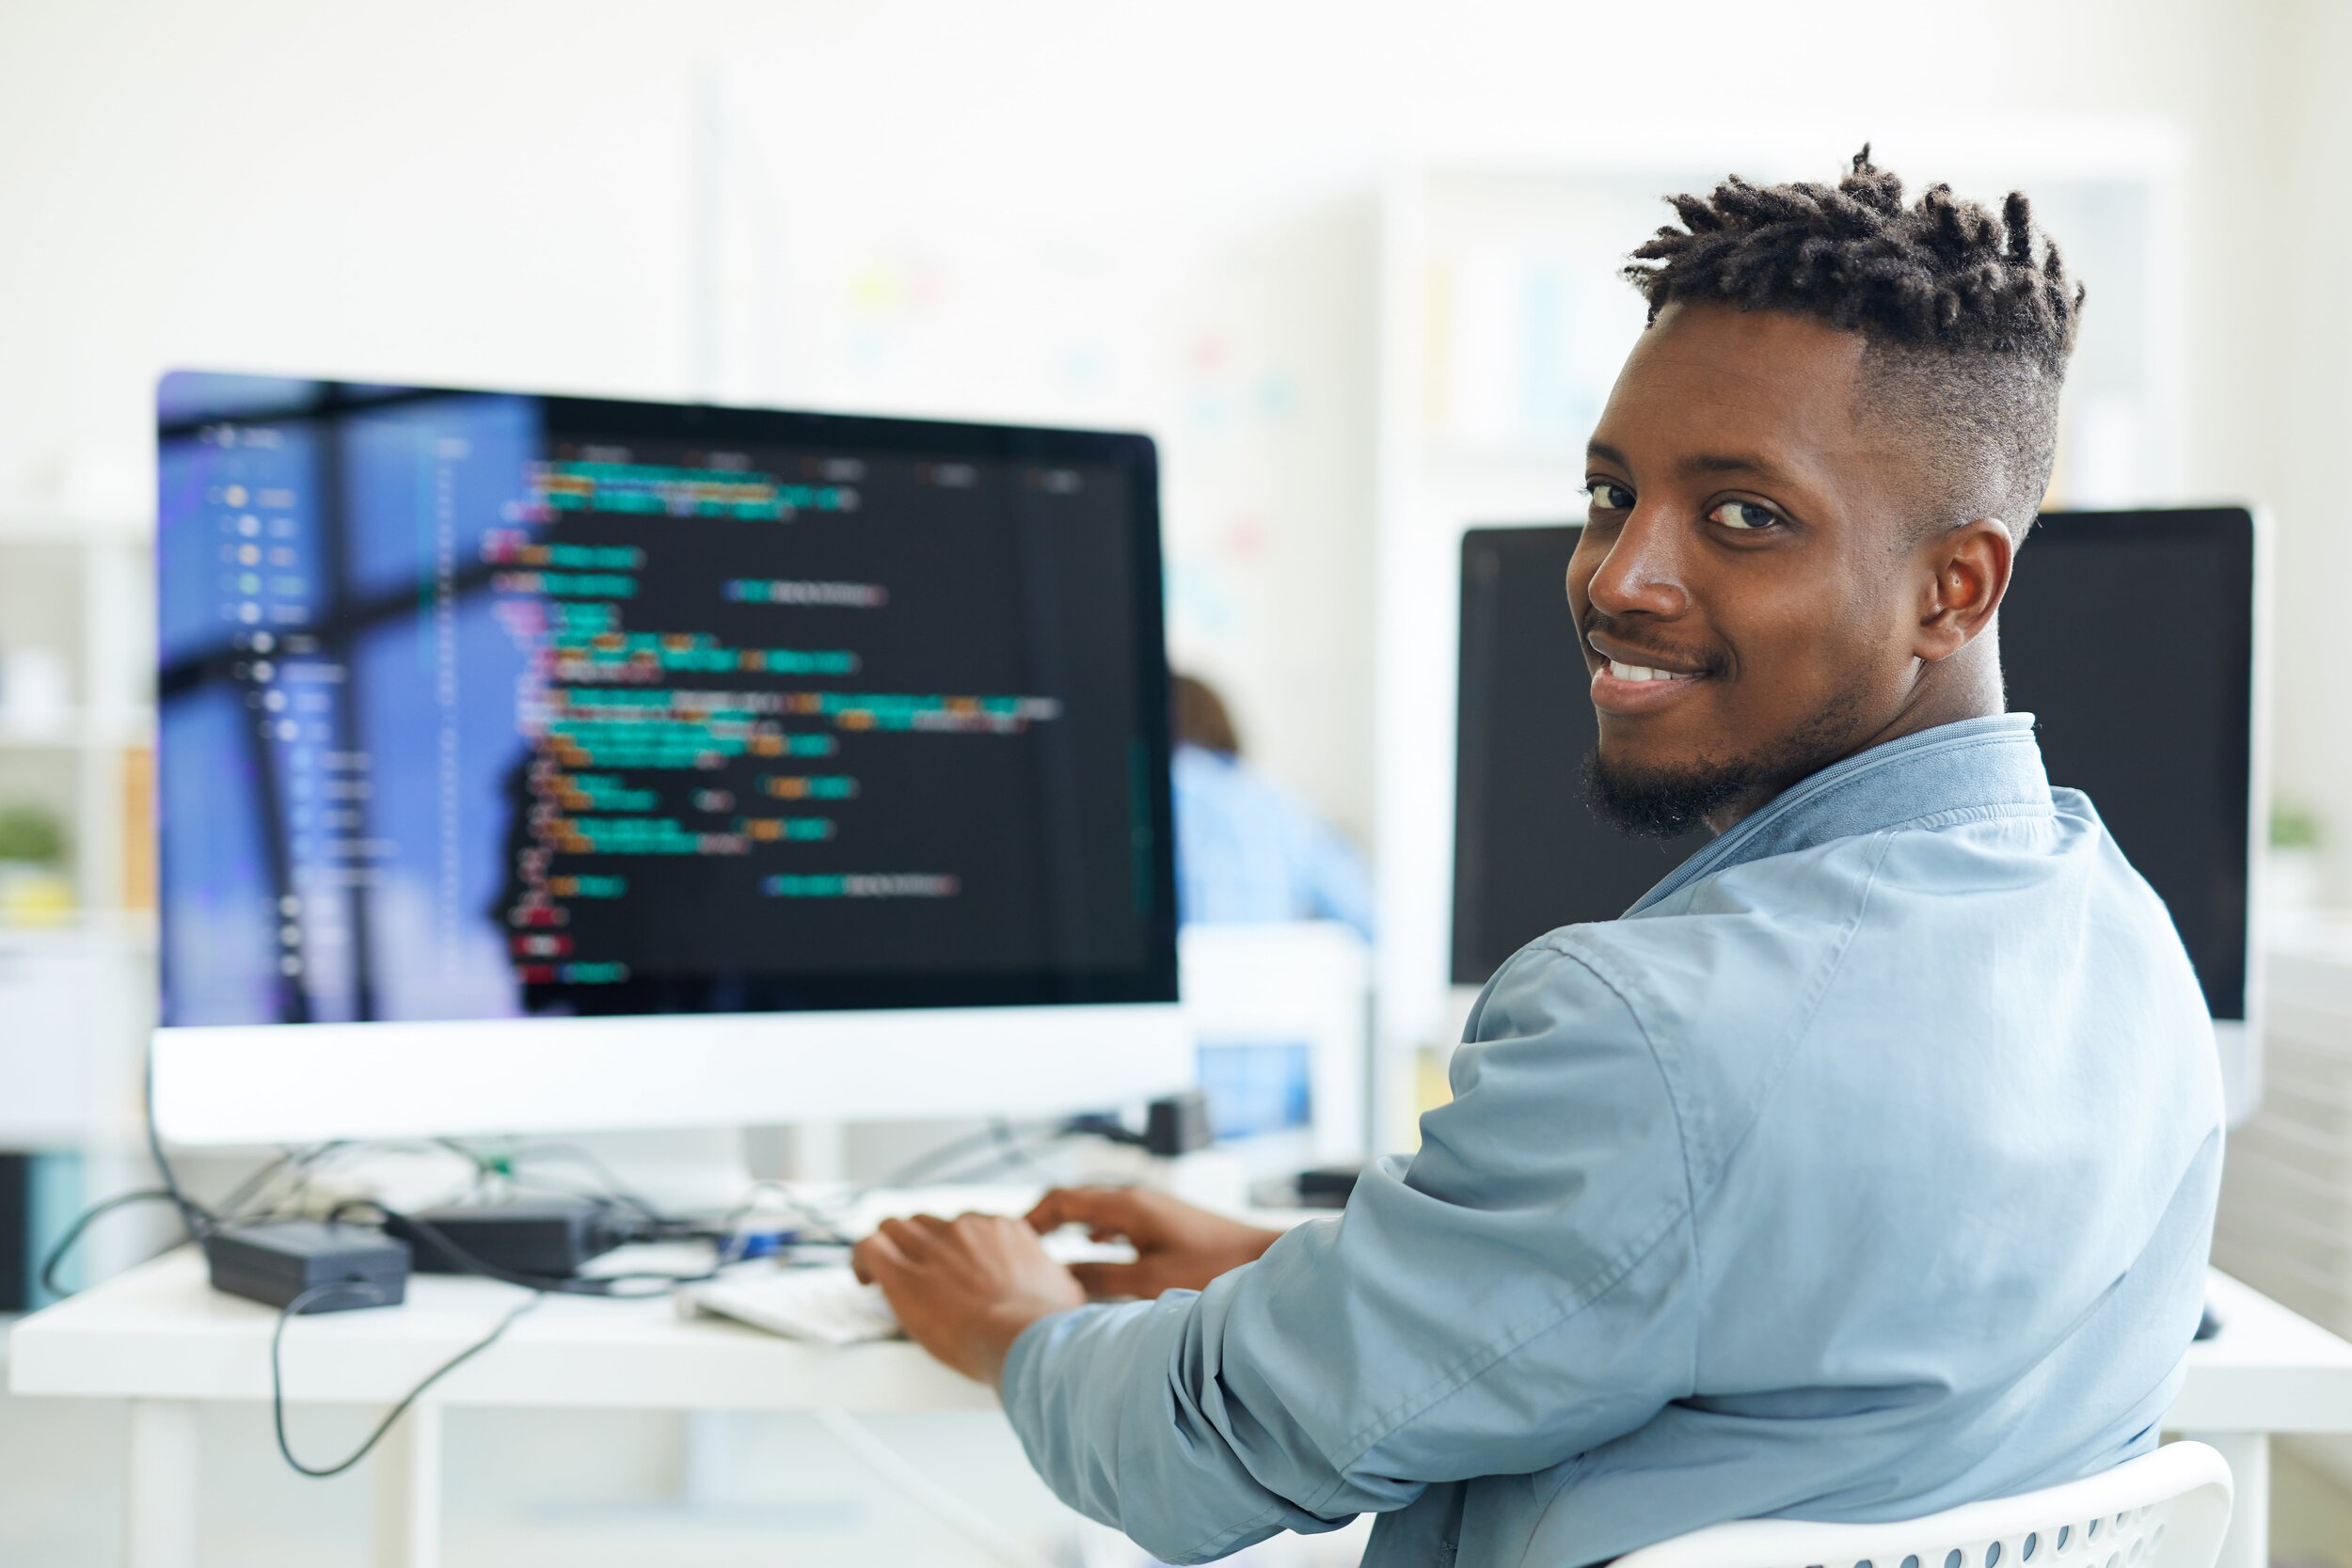 The Best Computer Science Colleges And How To Get Accepted Shemmassian Academic Consulting